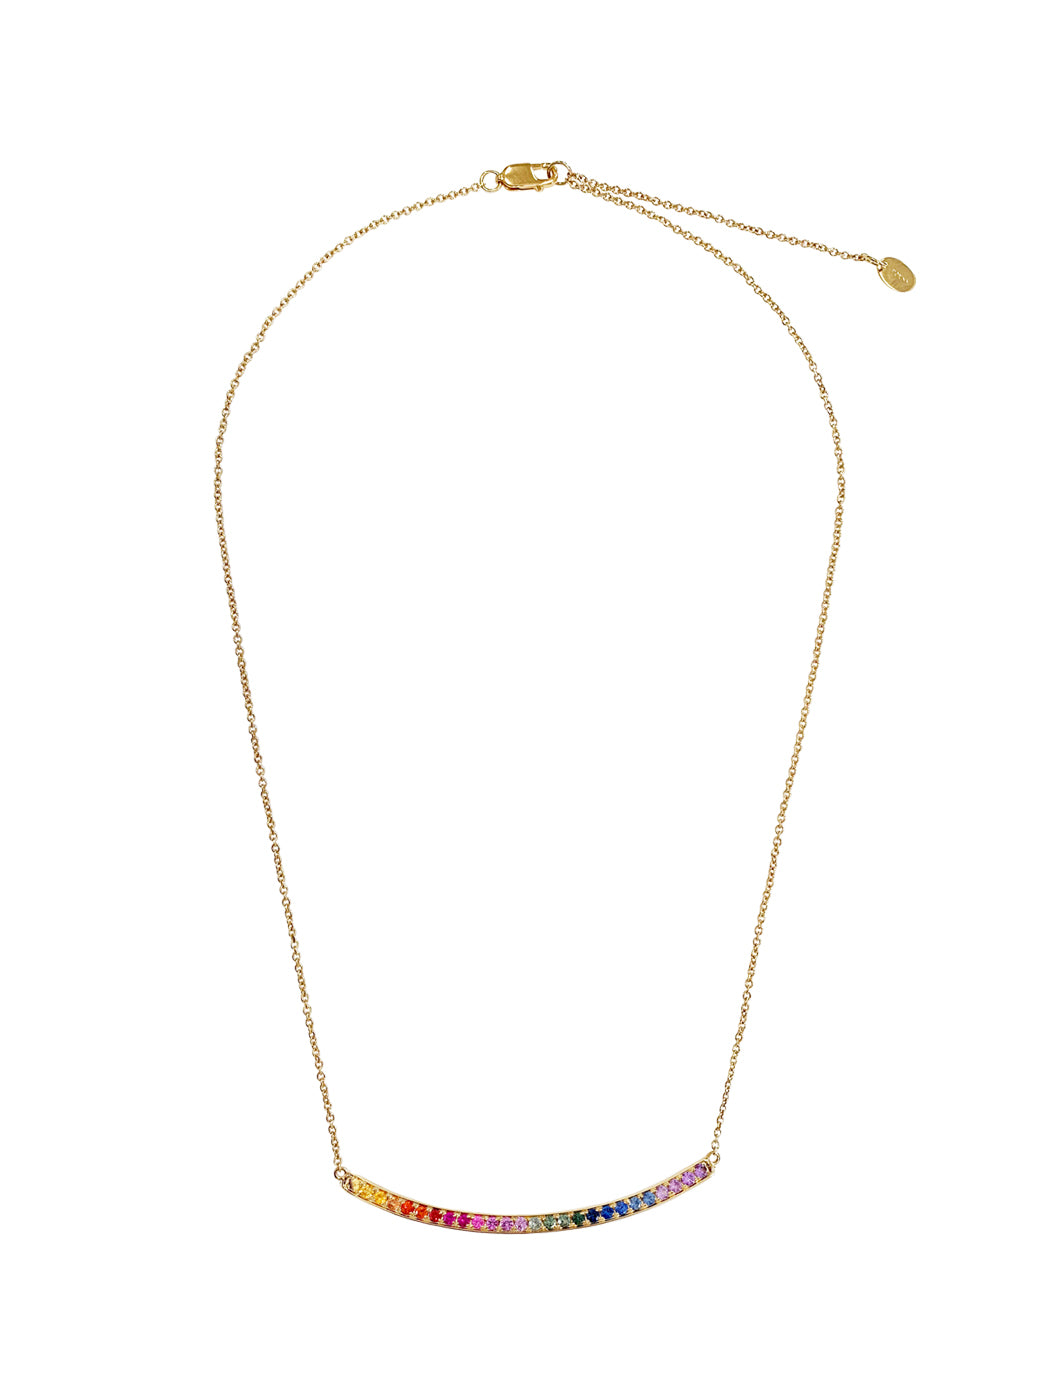 Fiorina Jewellery Arc Necklace Yellow Gold Chakra